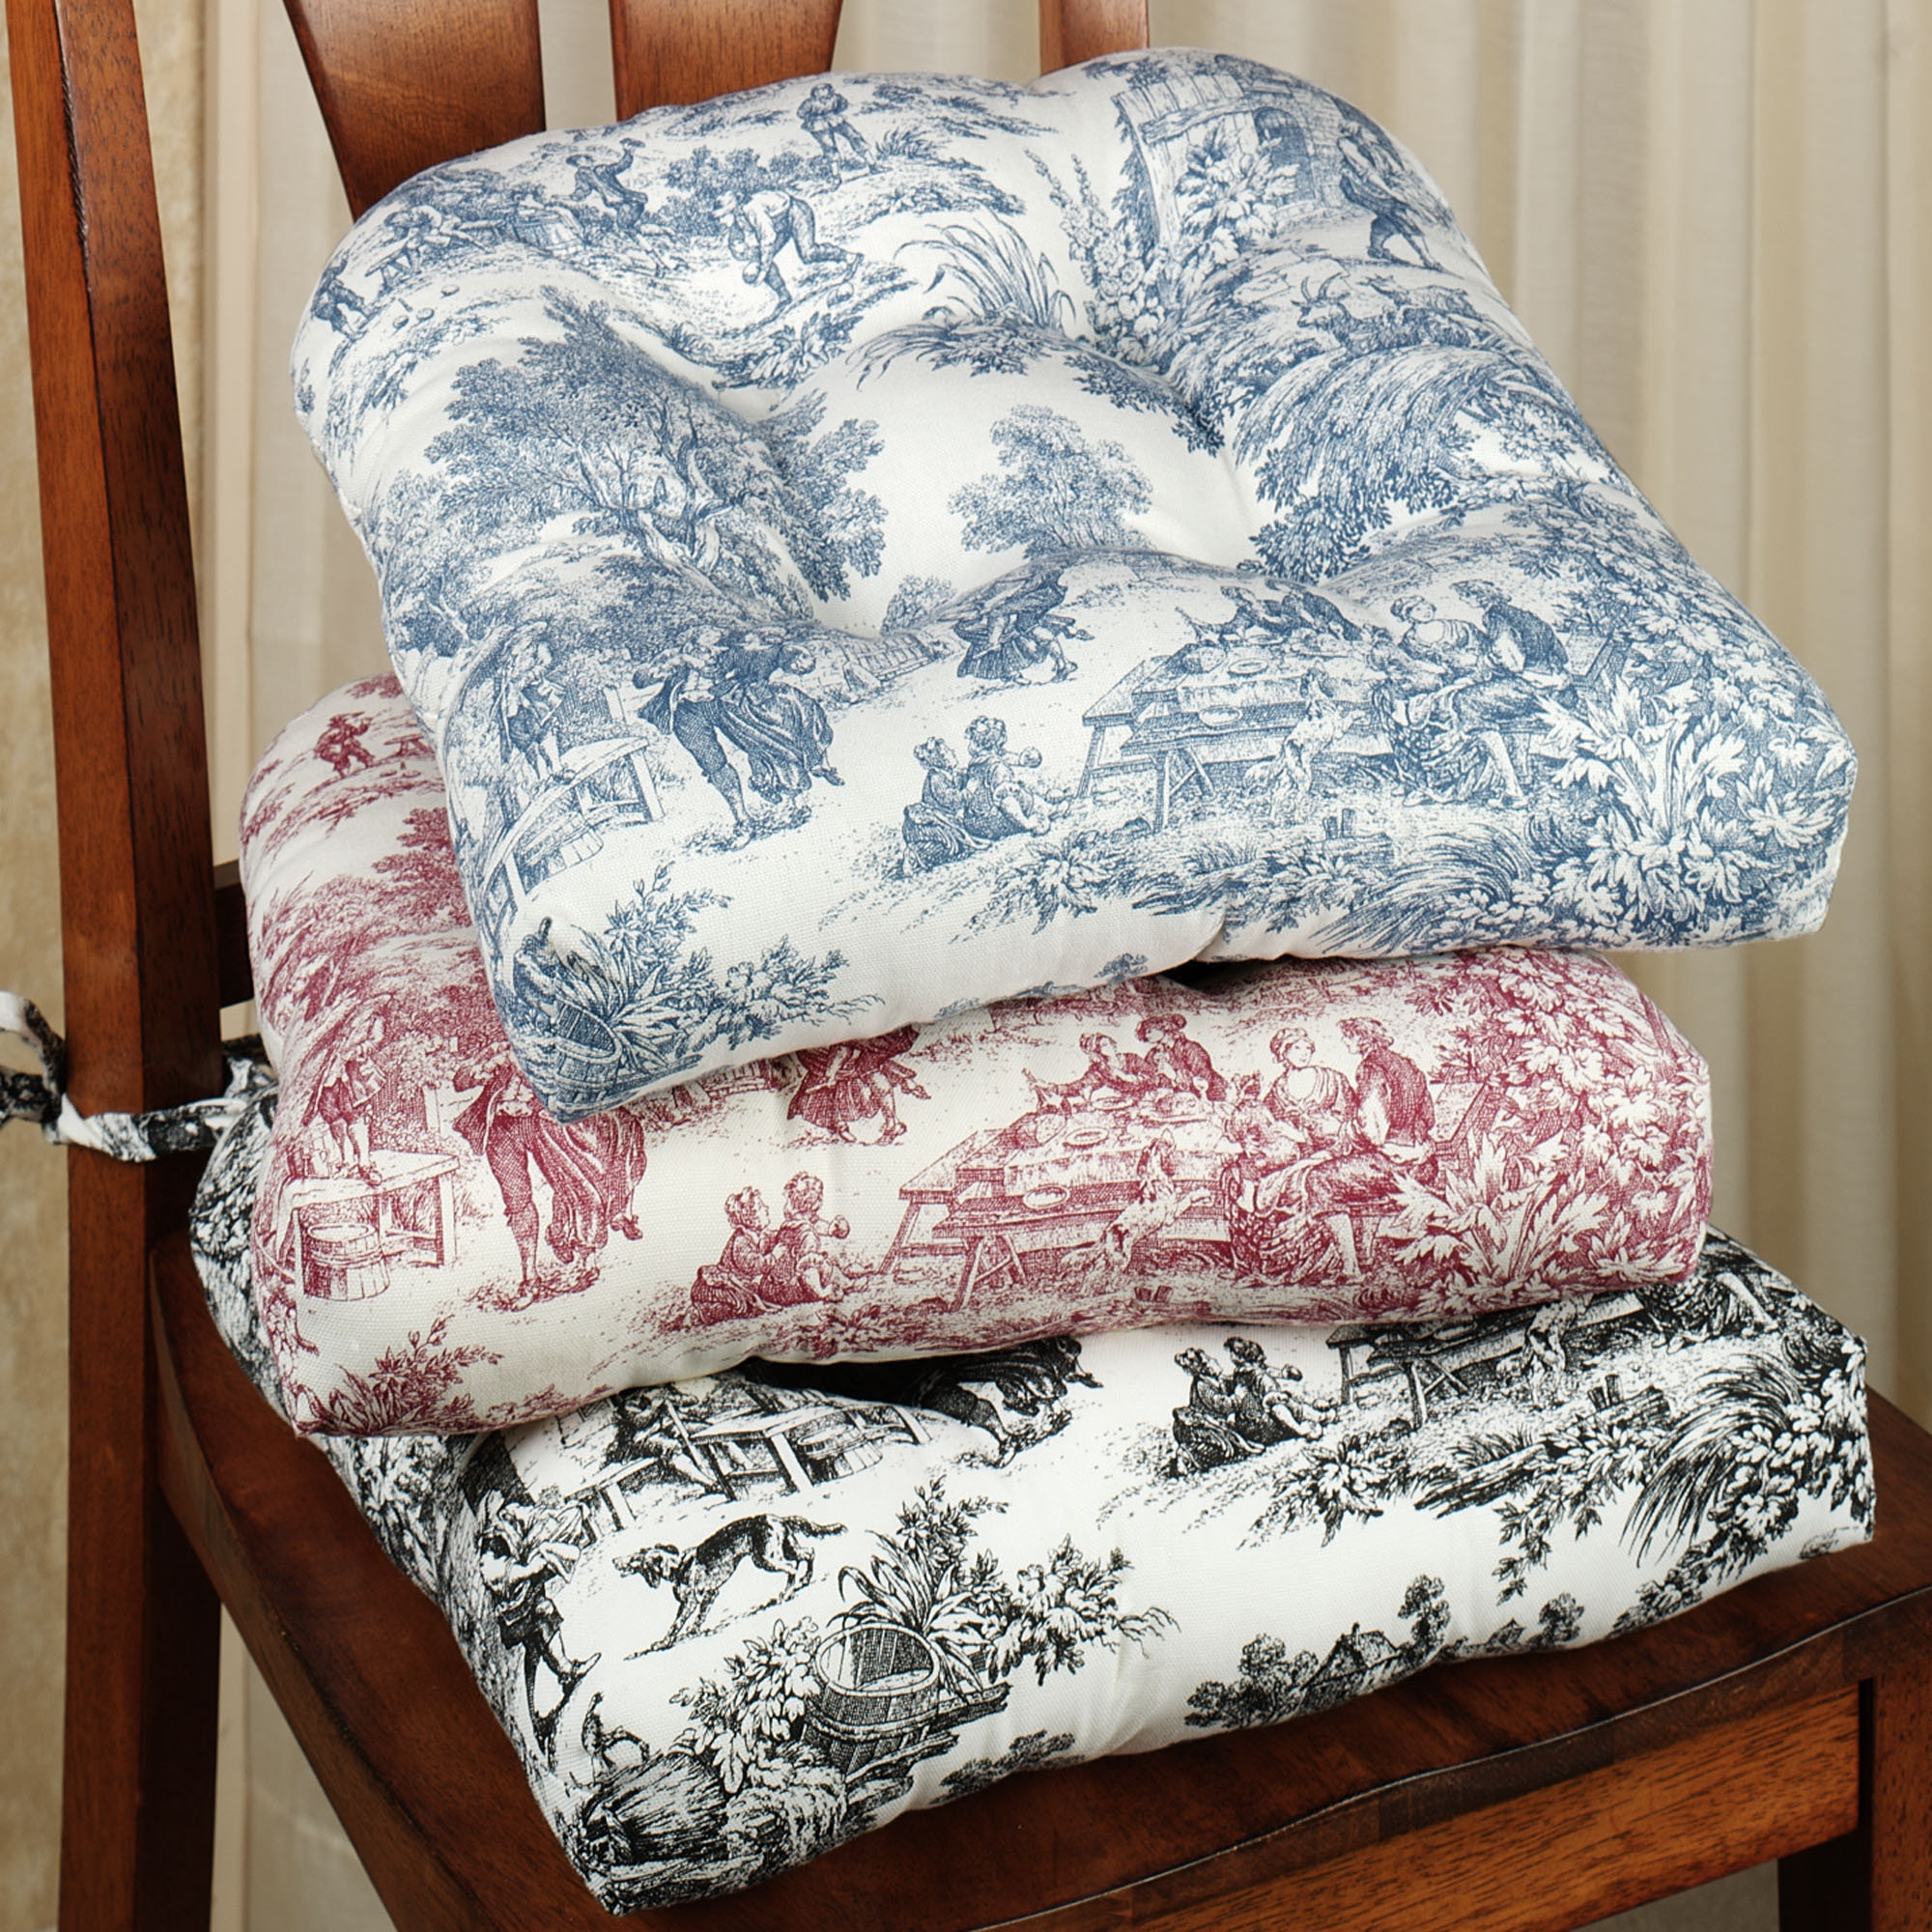 country chair pads cozy and stylishhomesfeed - Dining Room Chair Cushions